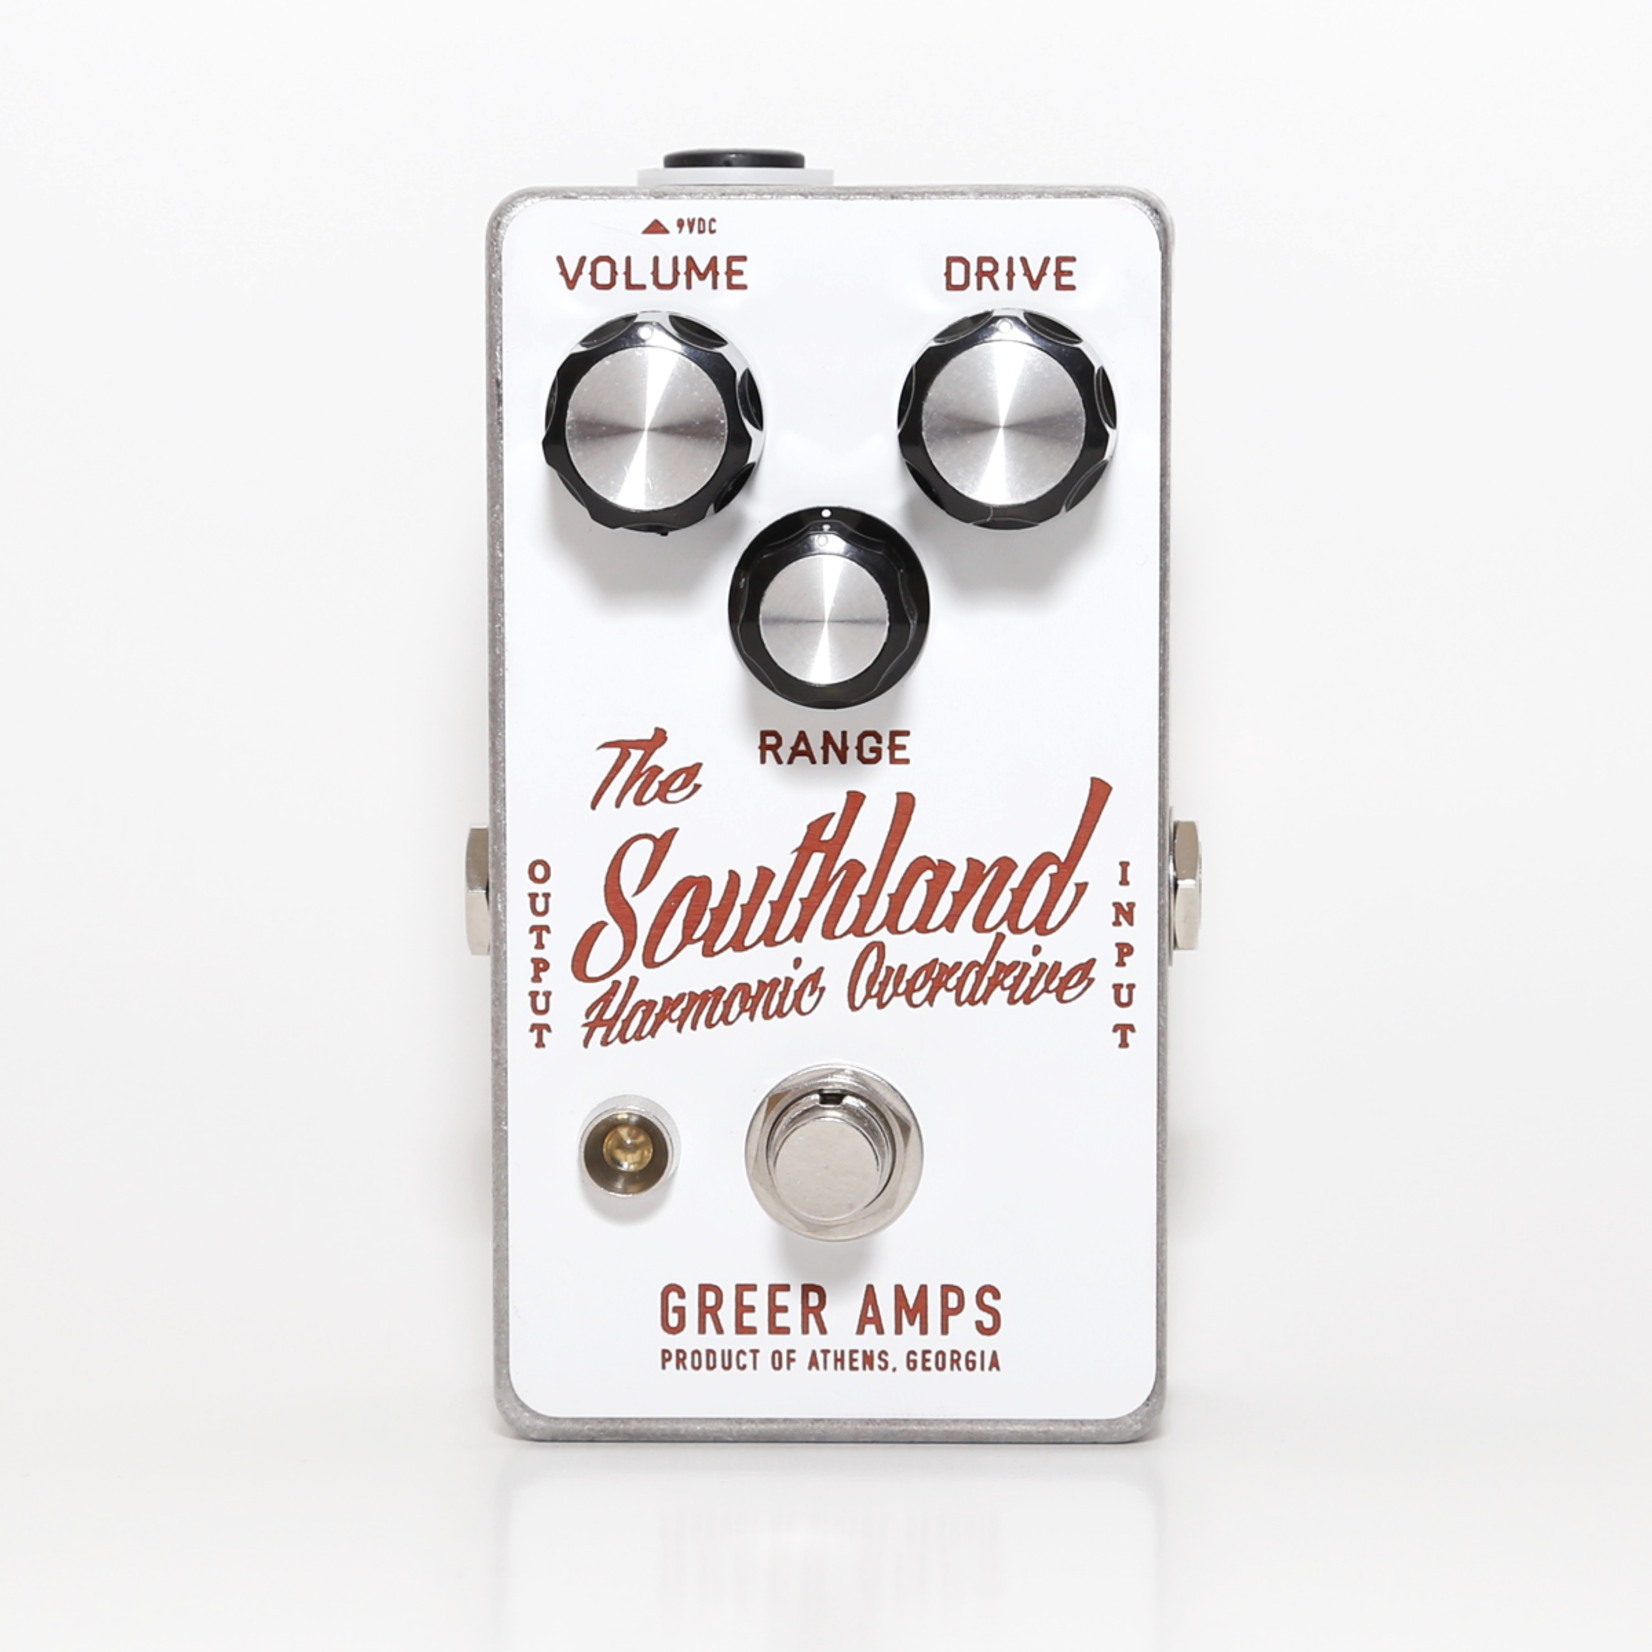 Greer Amps Greer Amps Southland Harmonic Overdrive